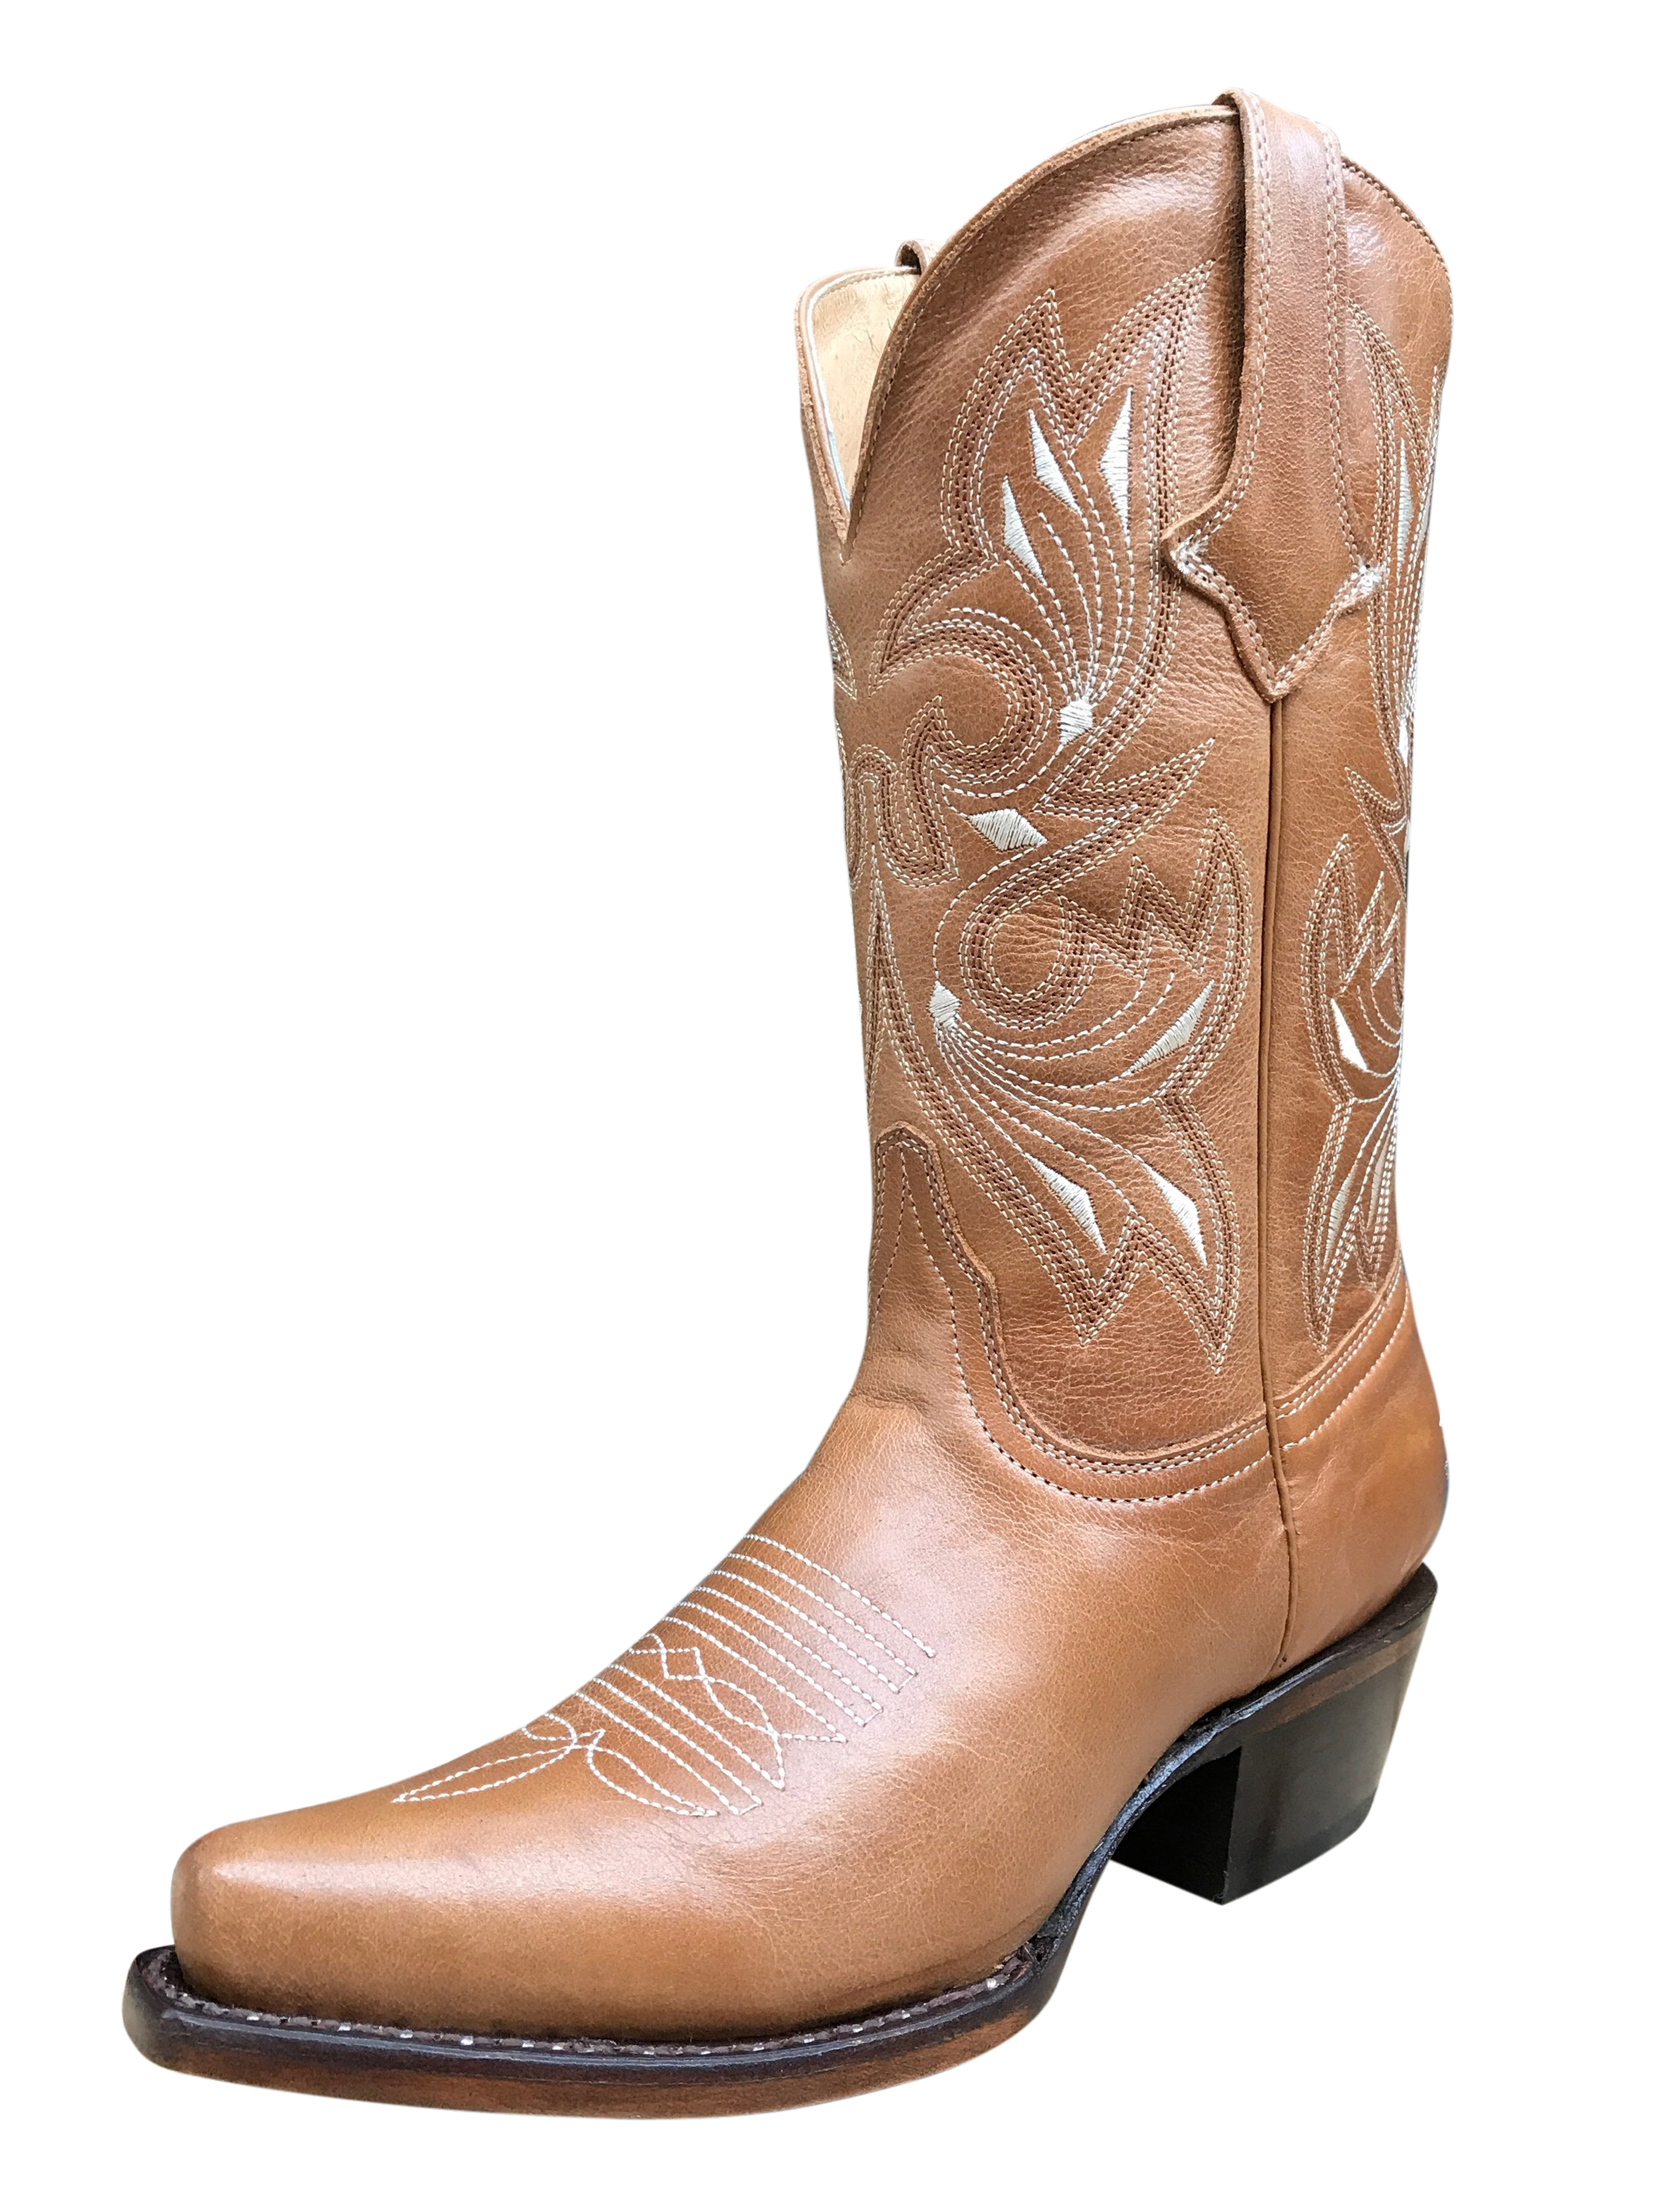 08fe1db2084 Cowboy Boots are in Fashion Fall 2017. Here is our basic black and ...